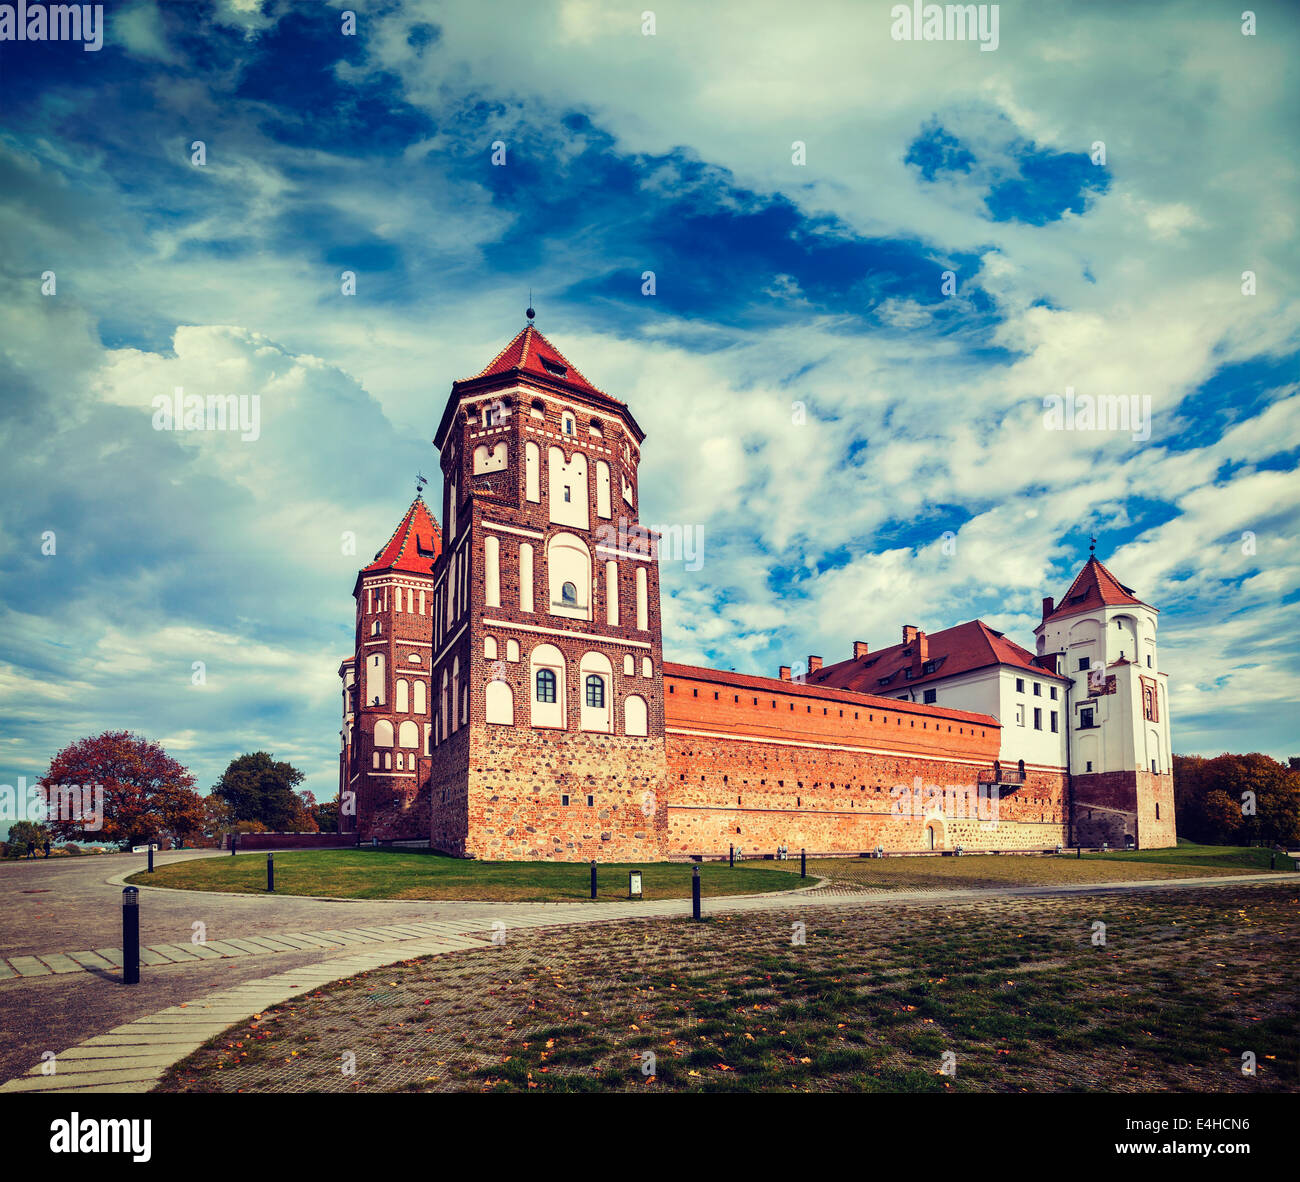 Vintage retro effect filtered hipster style travel image of medieval Mir castle famous landmark in town Mir, Belarus - Stock Image